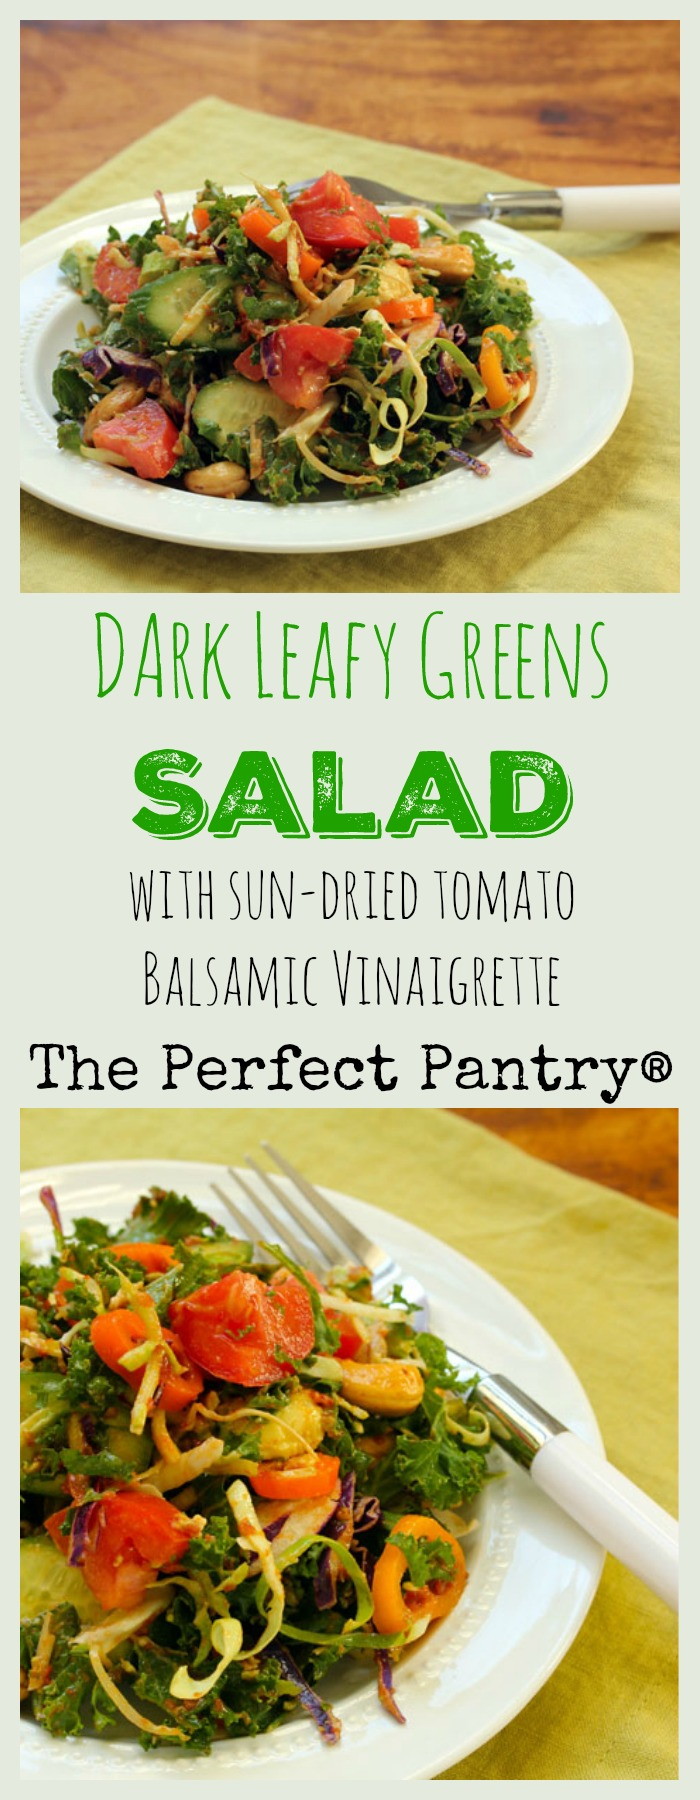 A dark leafy greens salad perfect for winter. Use sun-dried tomatoes to bump up the flavorful dressing.